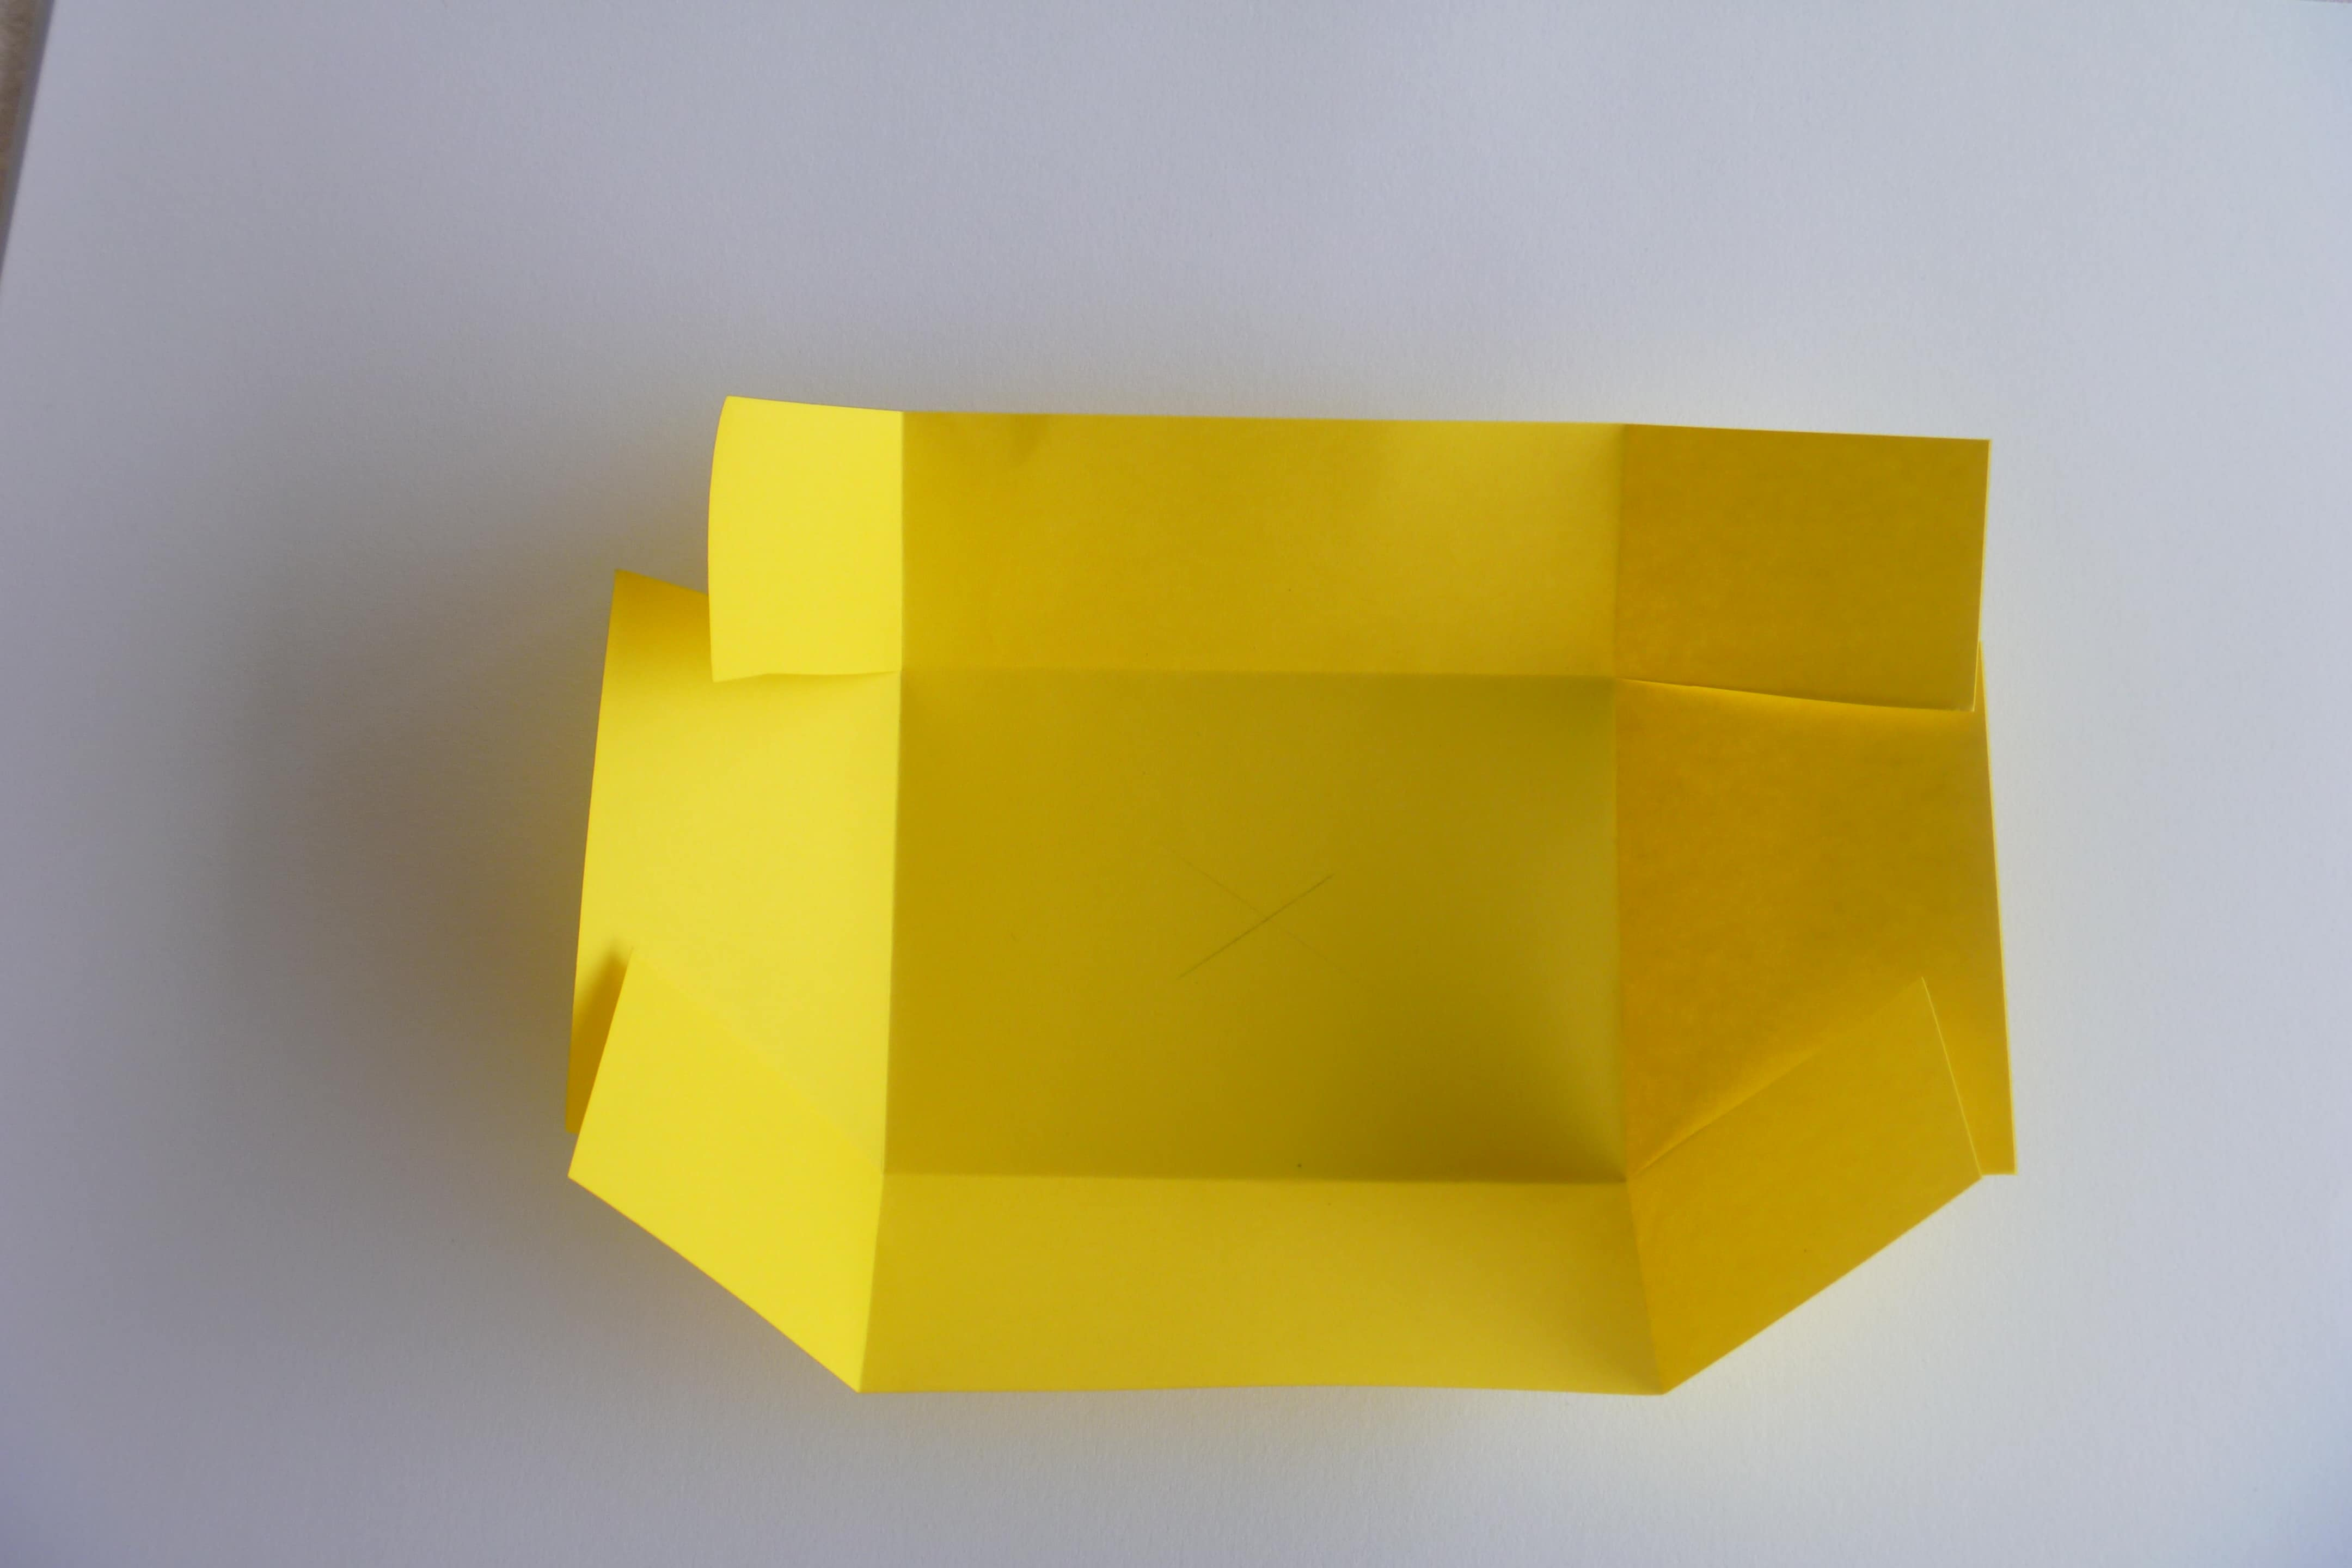 4 esl craft activities that can be done with a single piece of paper box folds jeuxipadfo Image collections